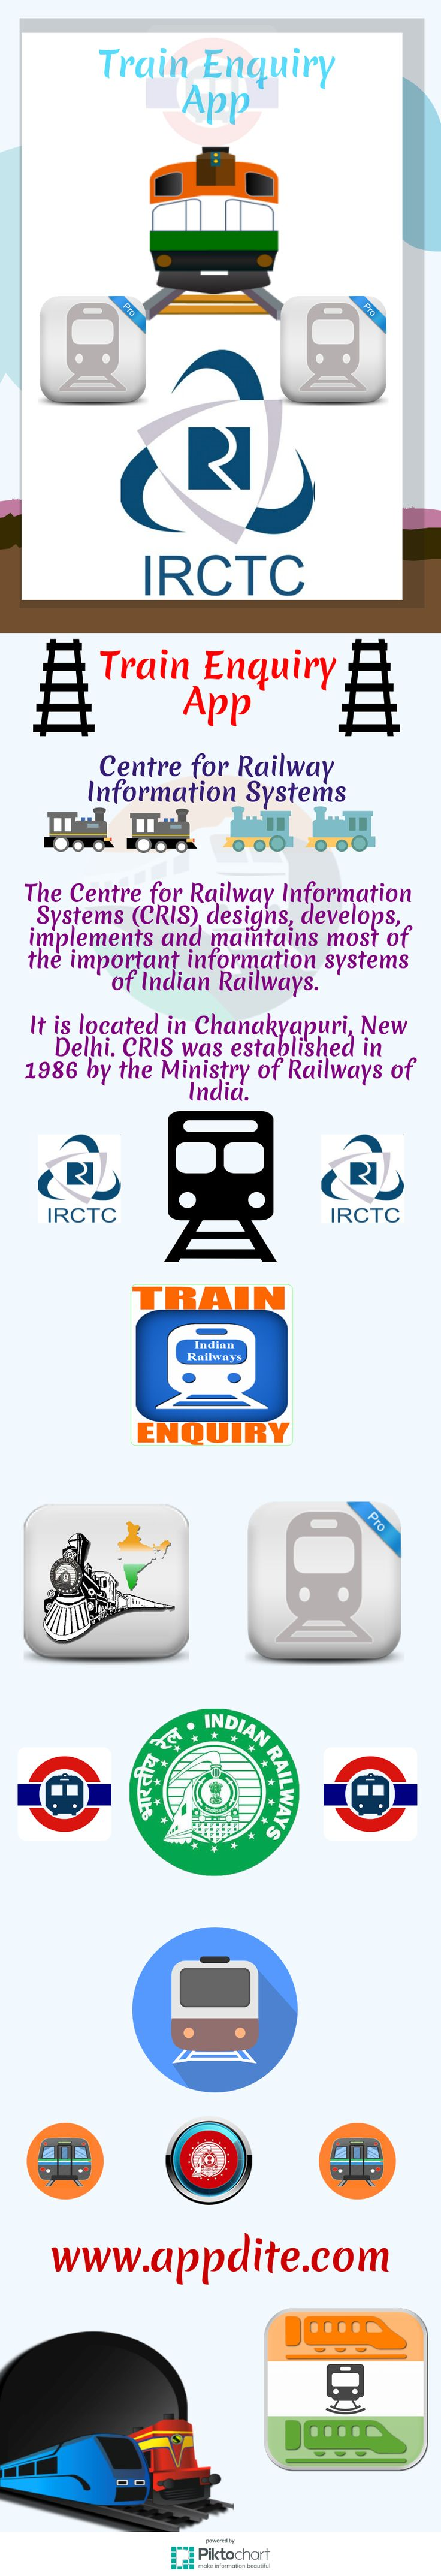 THIS INFOGRAPHY IMAGE TELLS US ABOUT THE TRAIN ENQUIRY APPS...................